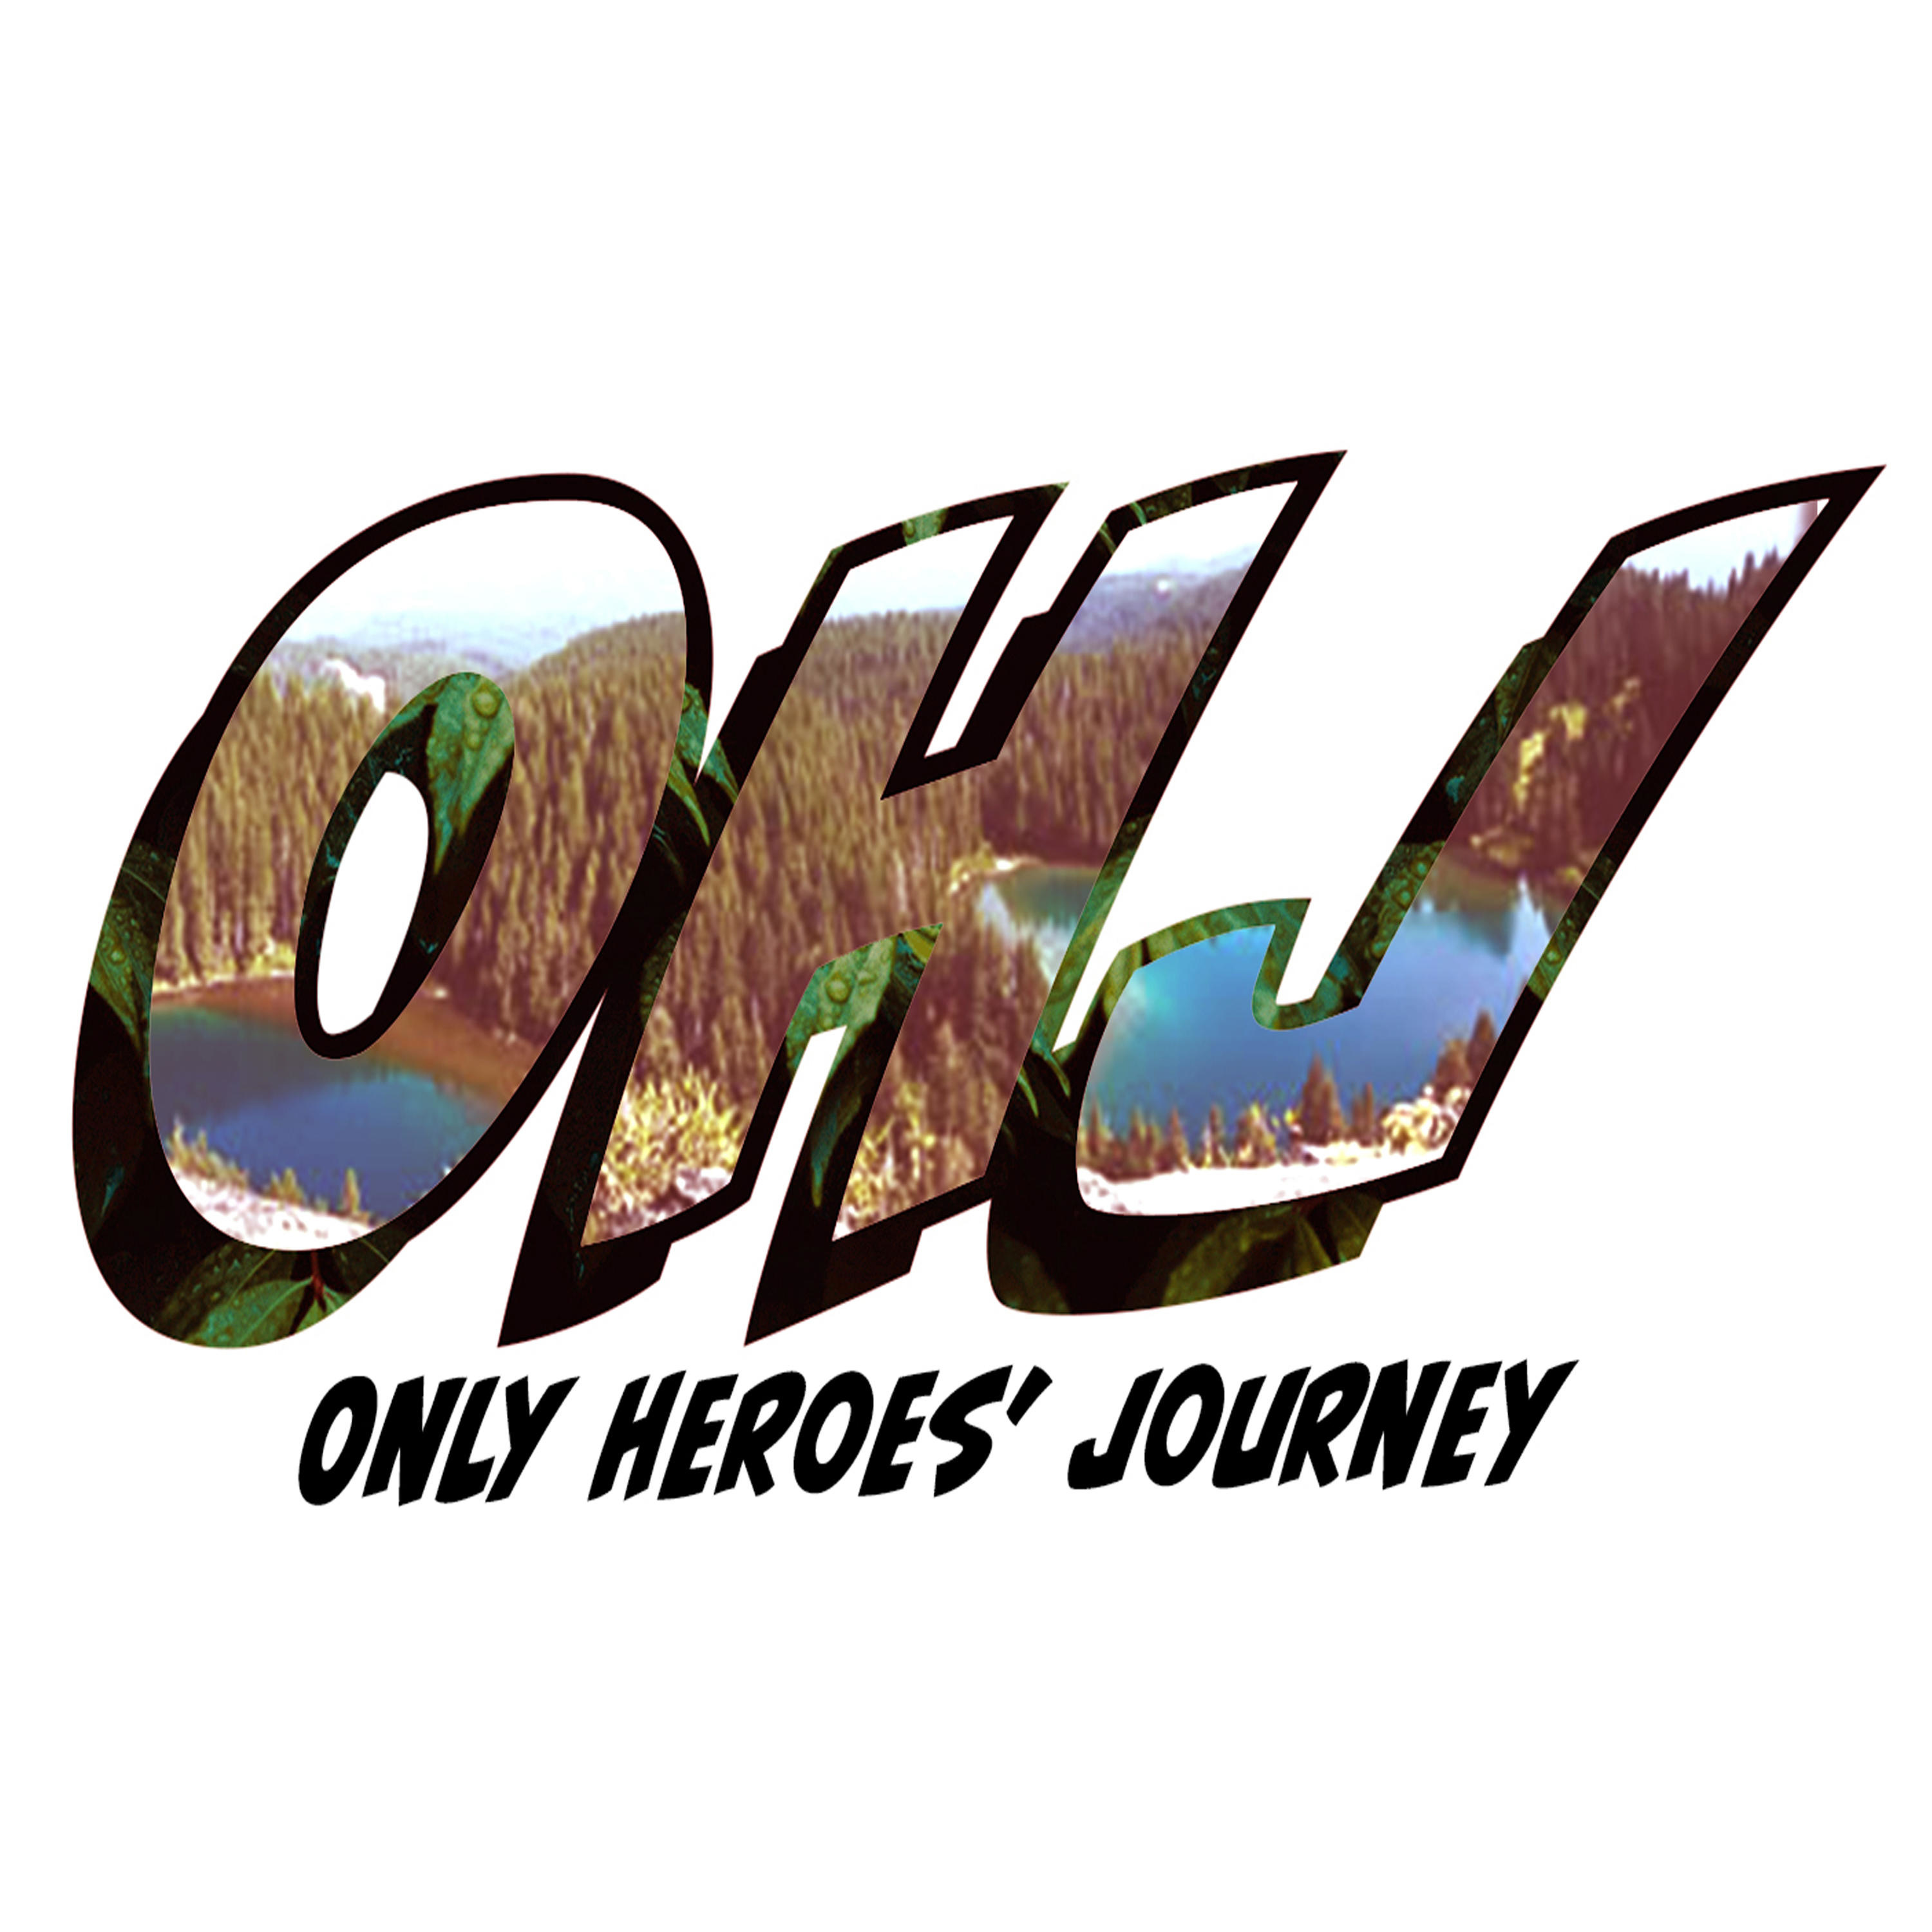 Only Heroes' Journey